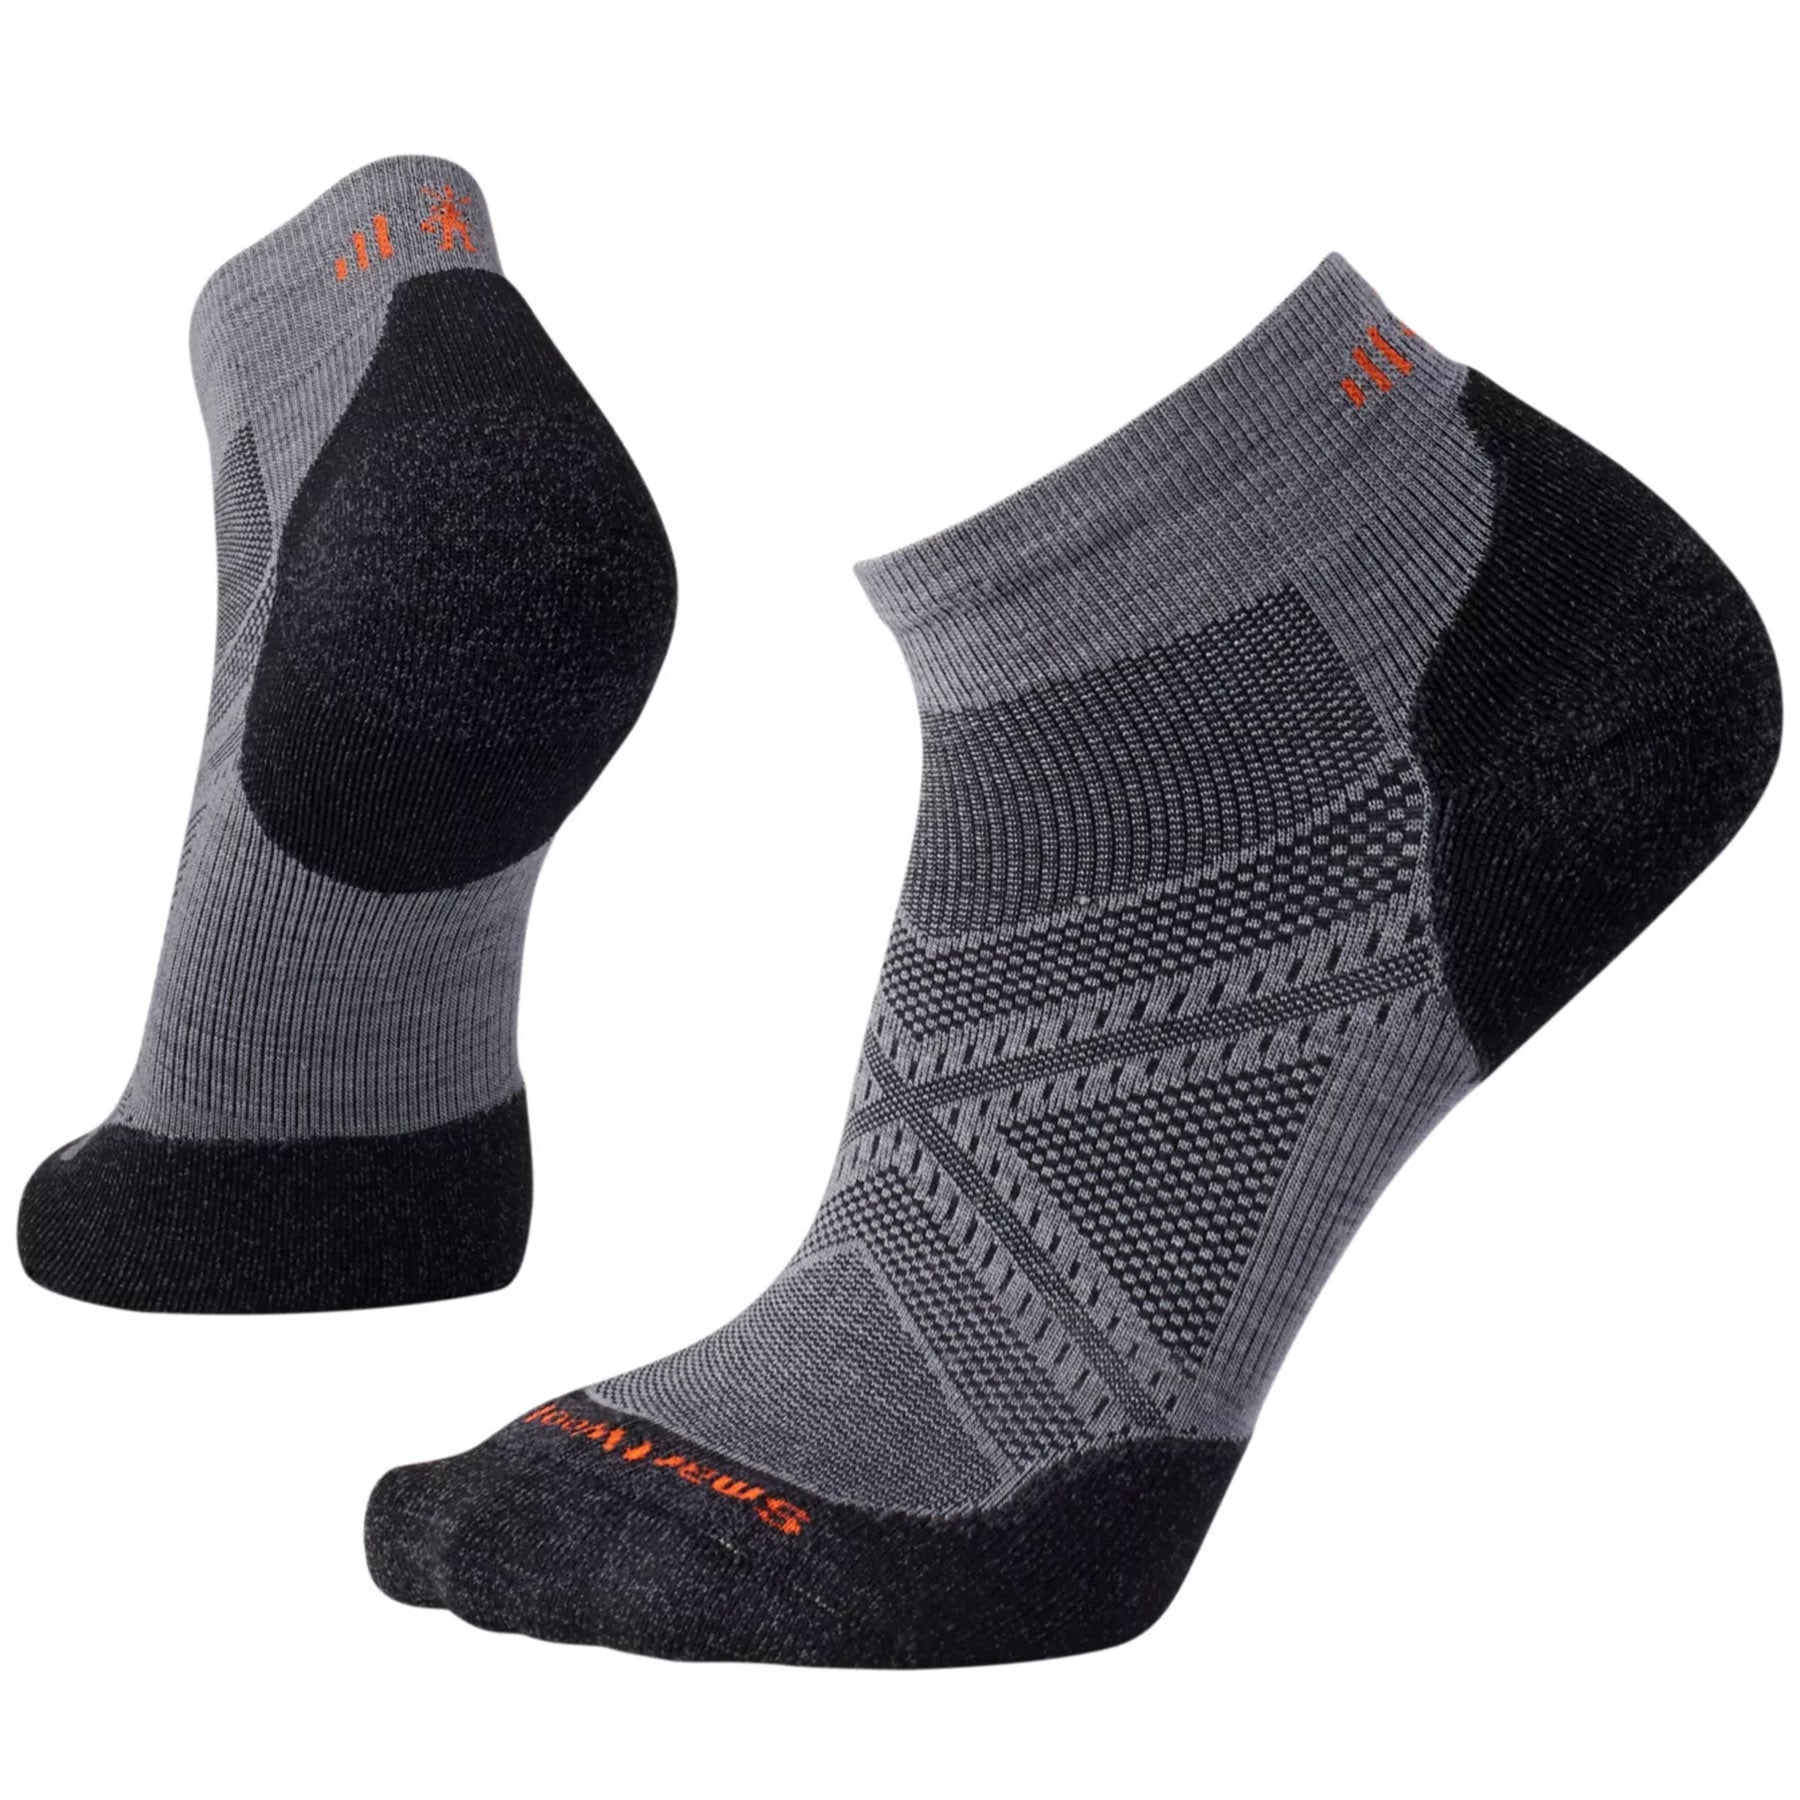 a pair of the light low men's phd run socks in graphite